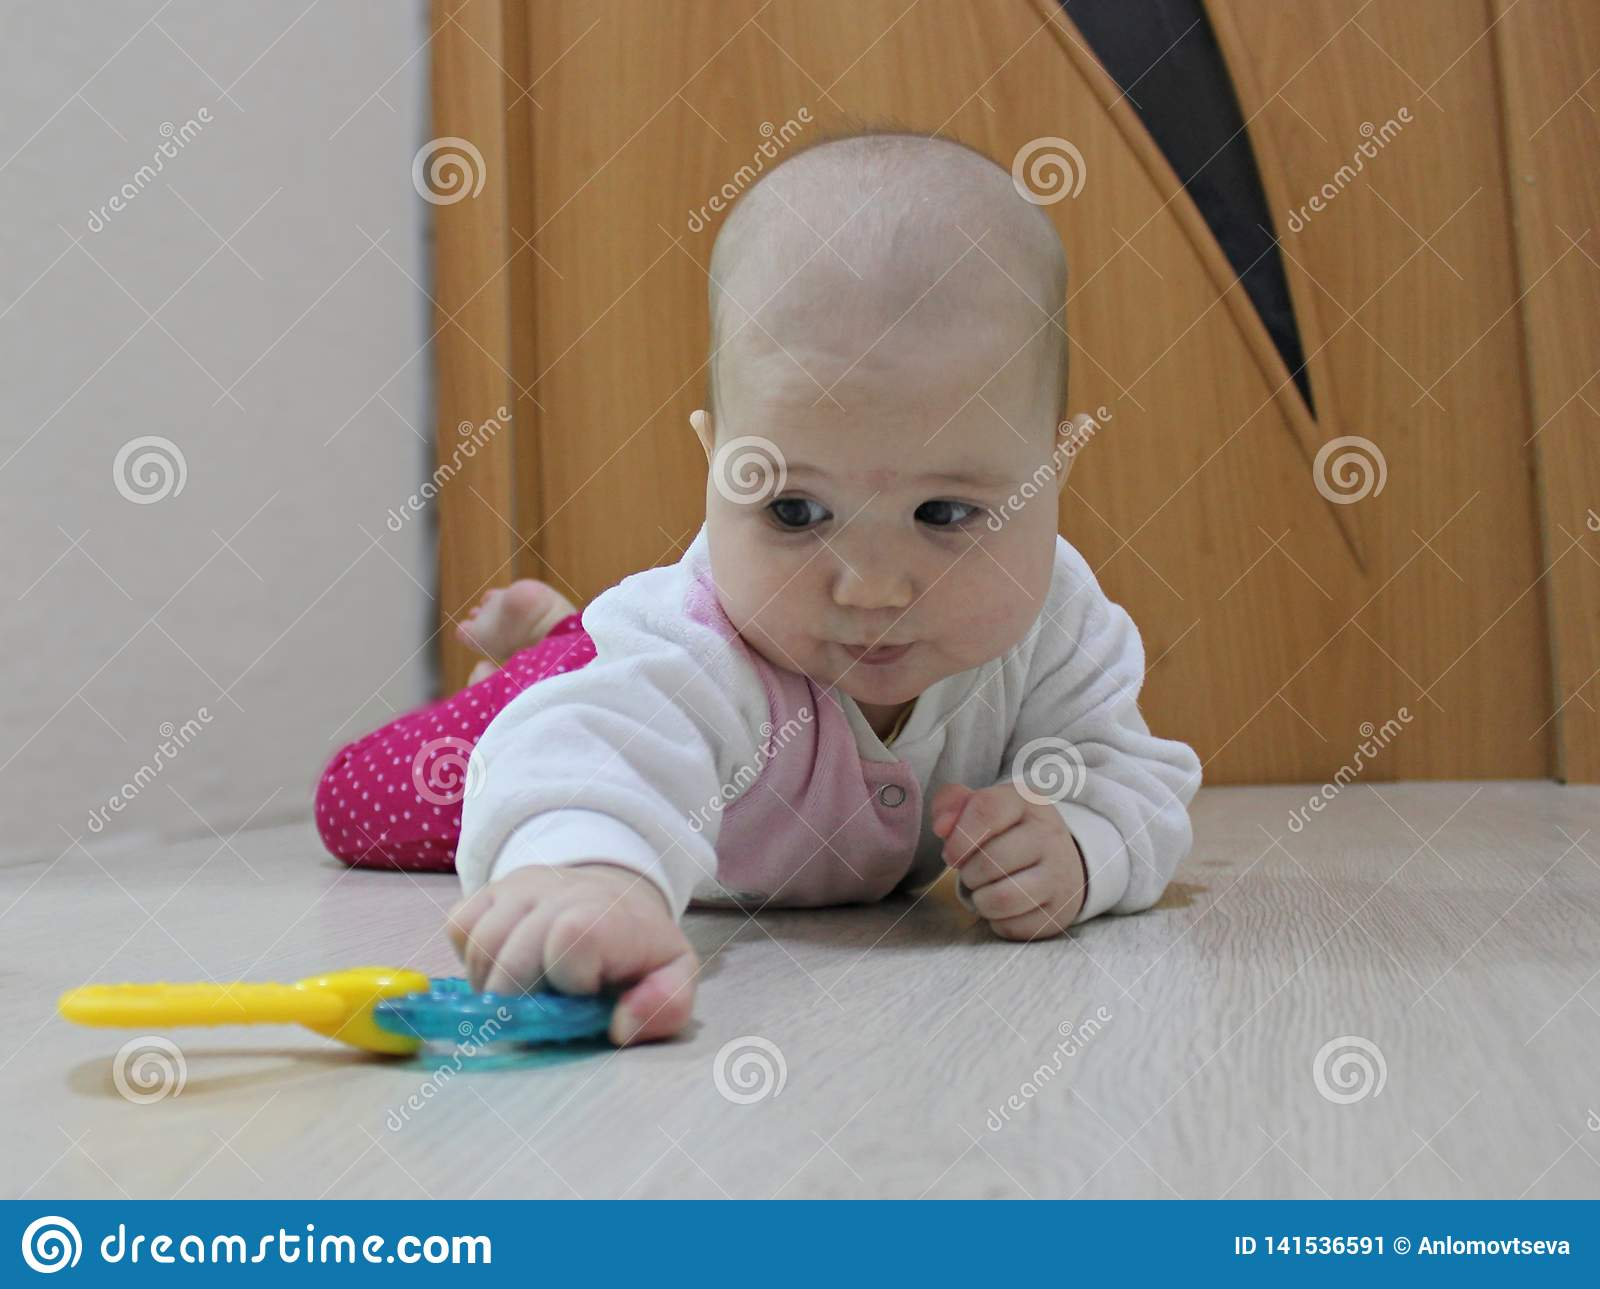 Baby crawling after a toy